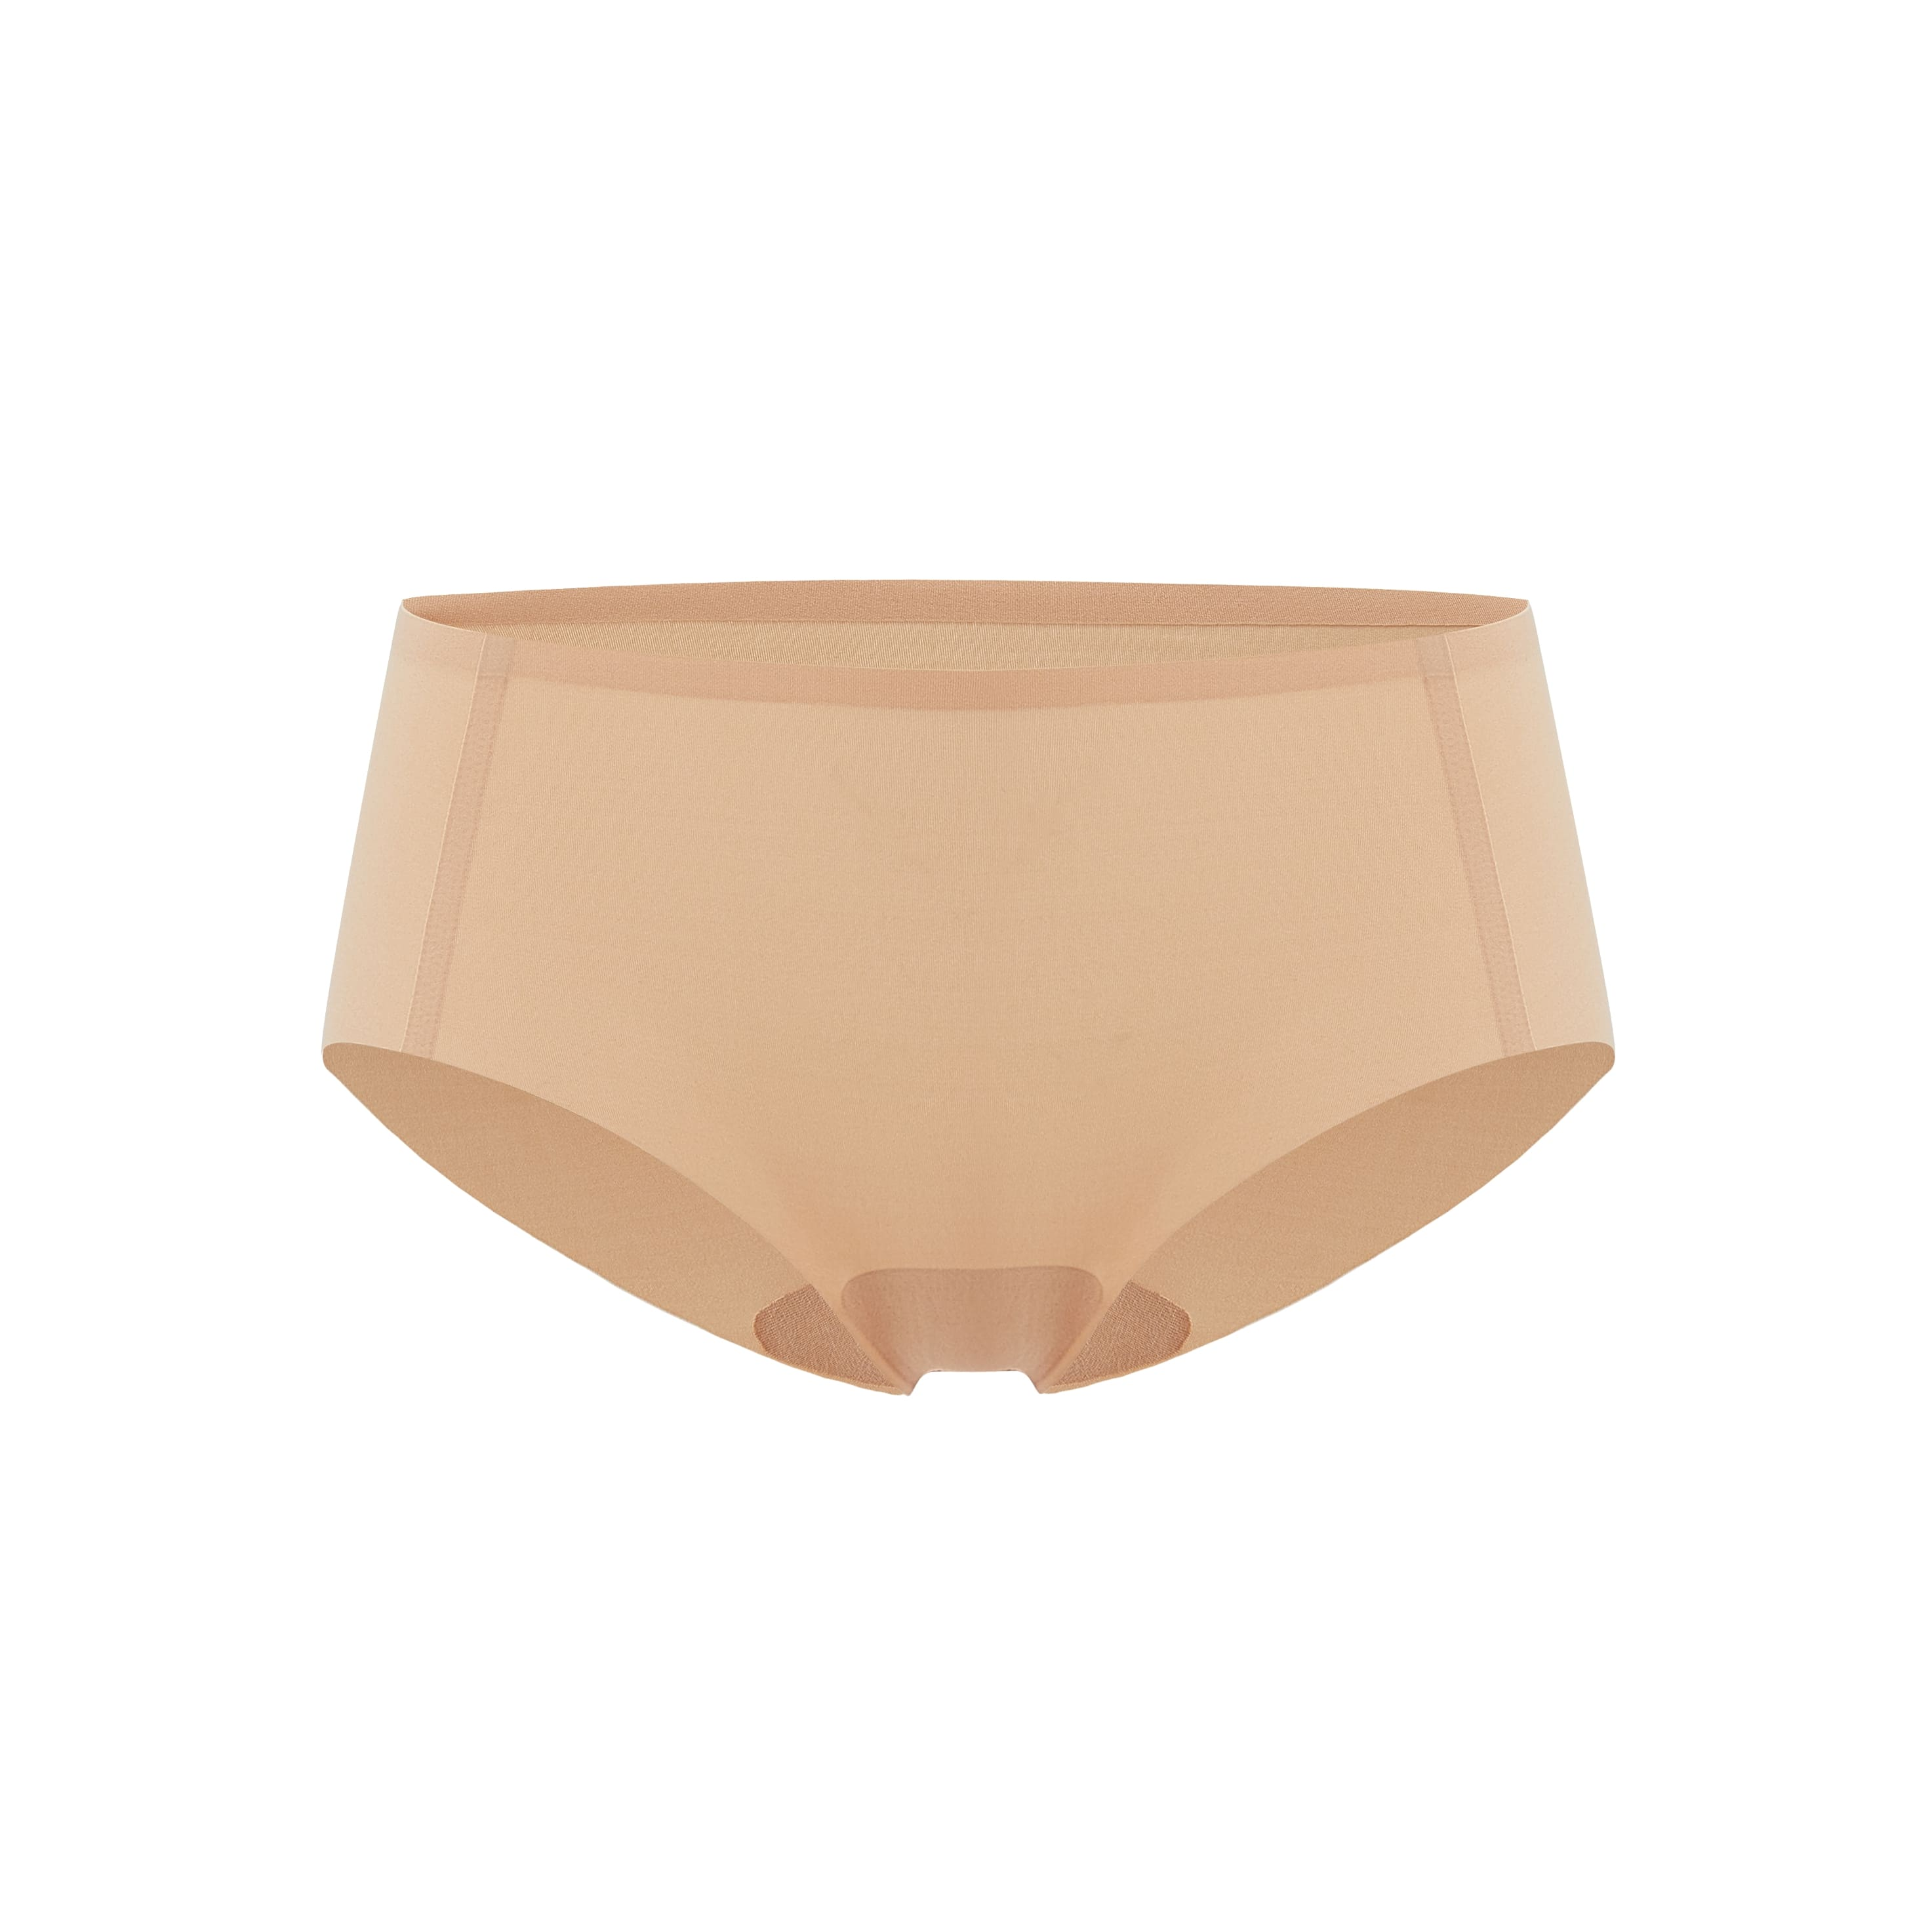 2021 Barely Zero® Your-Size-Is-The-Size Low Waist Brief Bundle